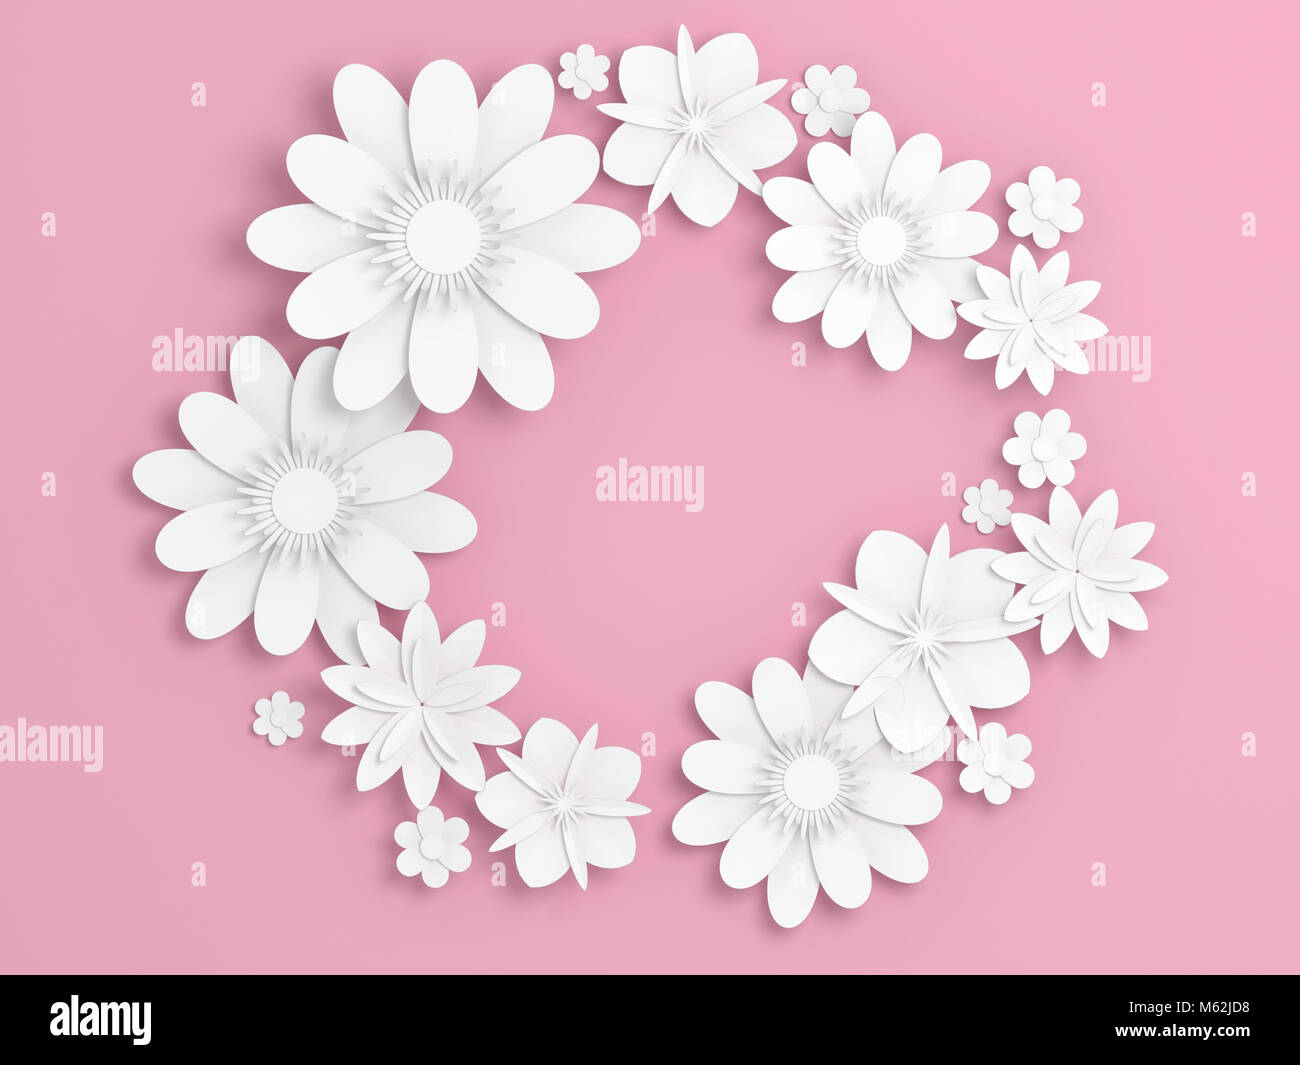 White paper flowers decoration over light pink backdrop bridal white paper flowers decoration over light pink backdrop bridal greeting card ornamental background digital 3d render illustration mightylinksfo